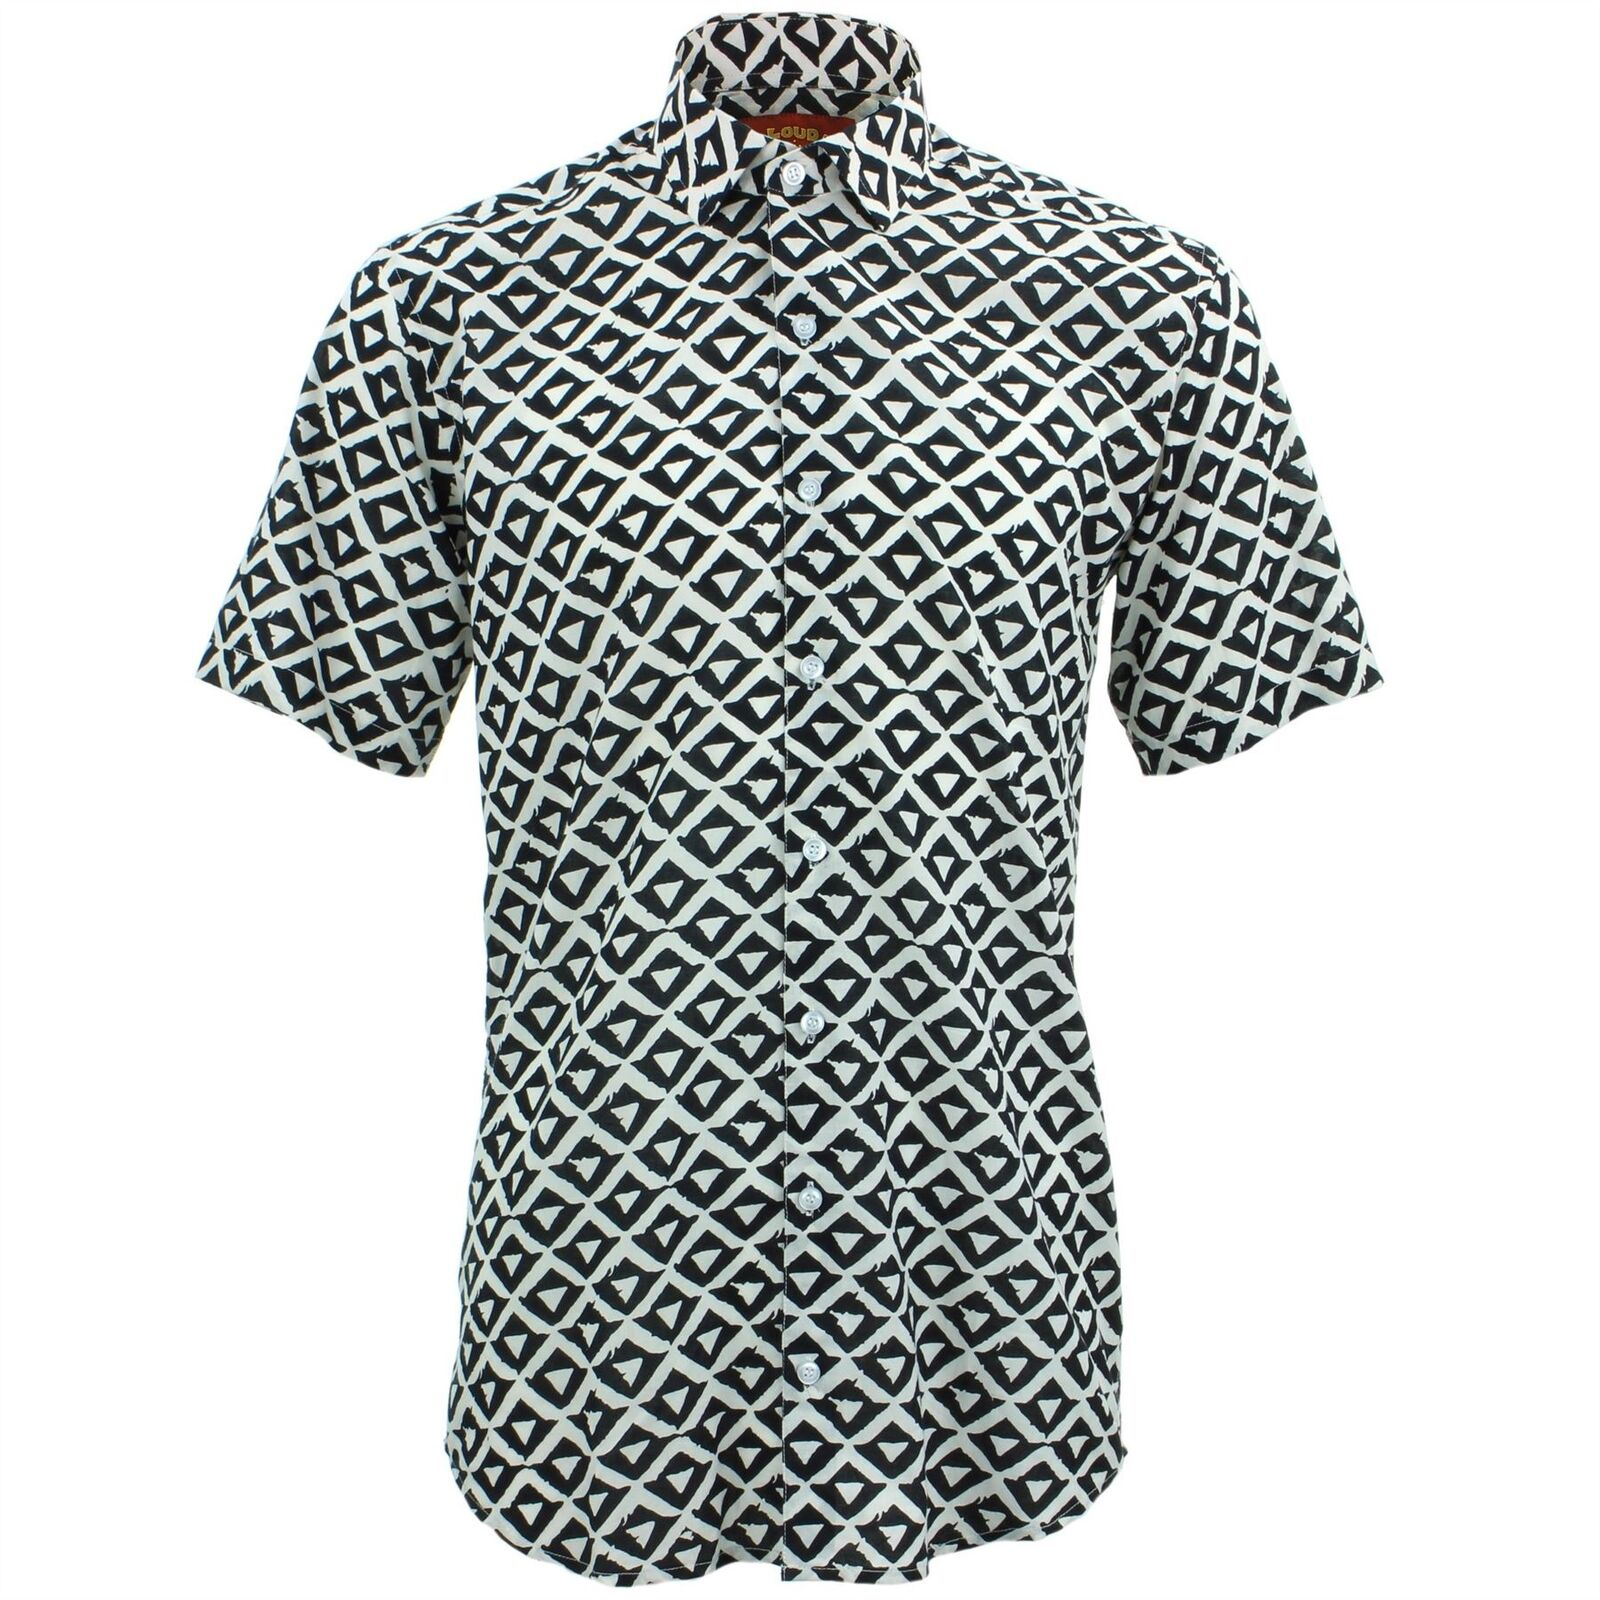 Mens Shirt Loud Originals TAILORED FIT Shapes White Retro Psychedelic Fancy